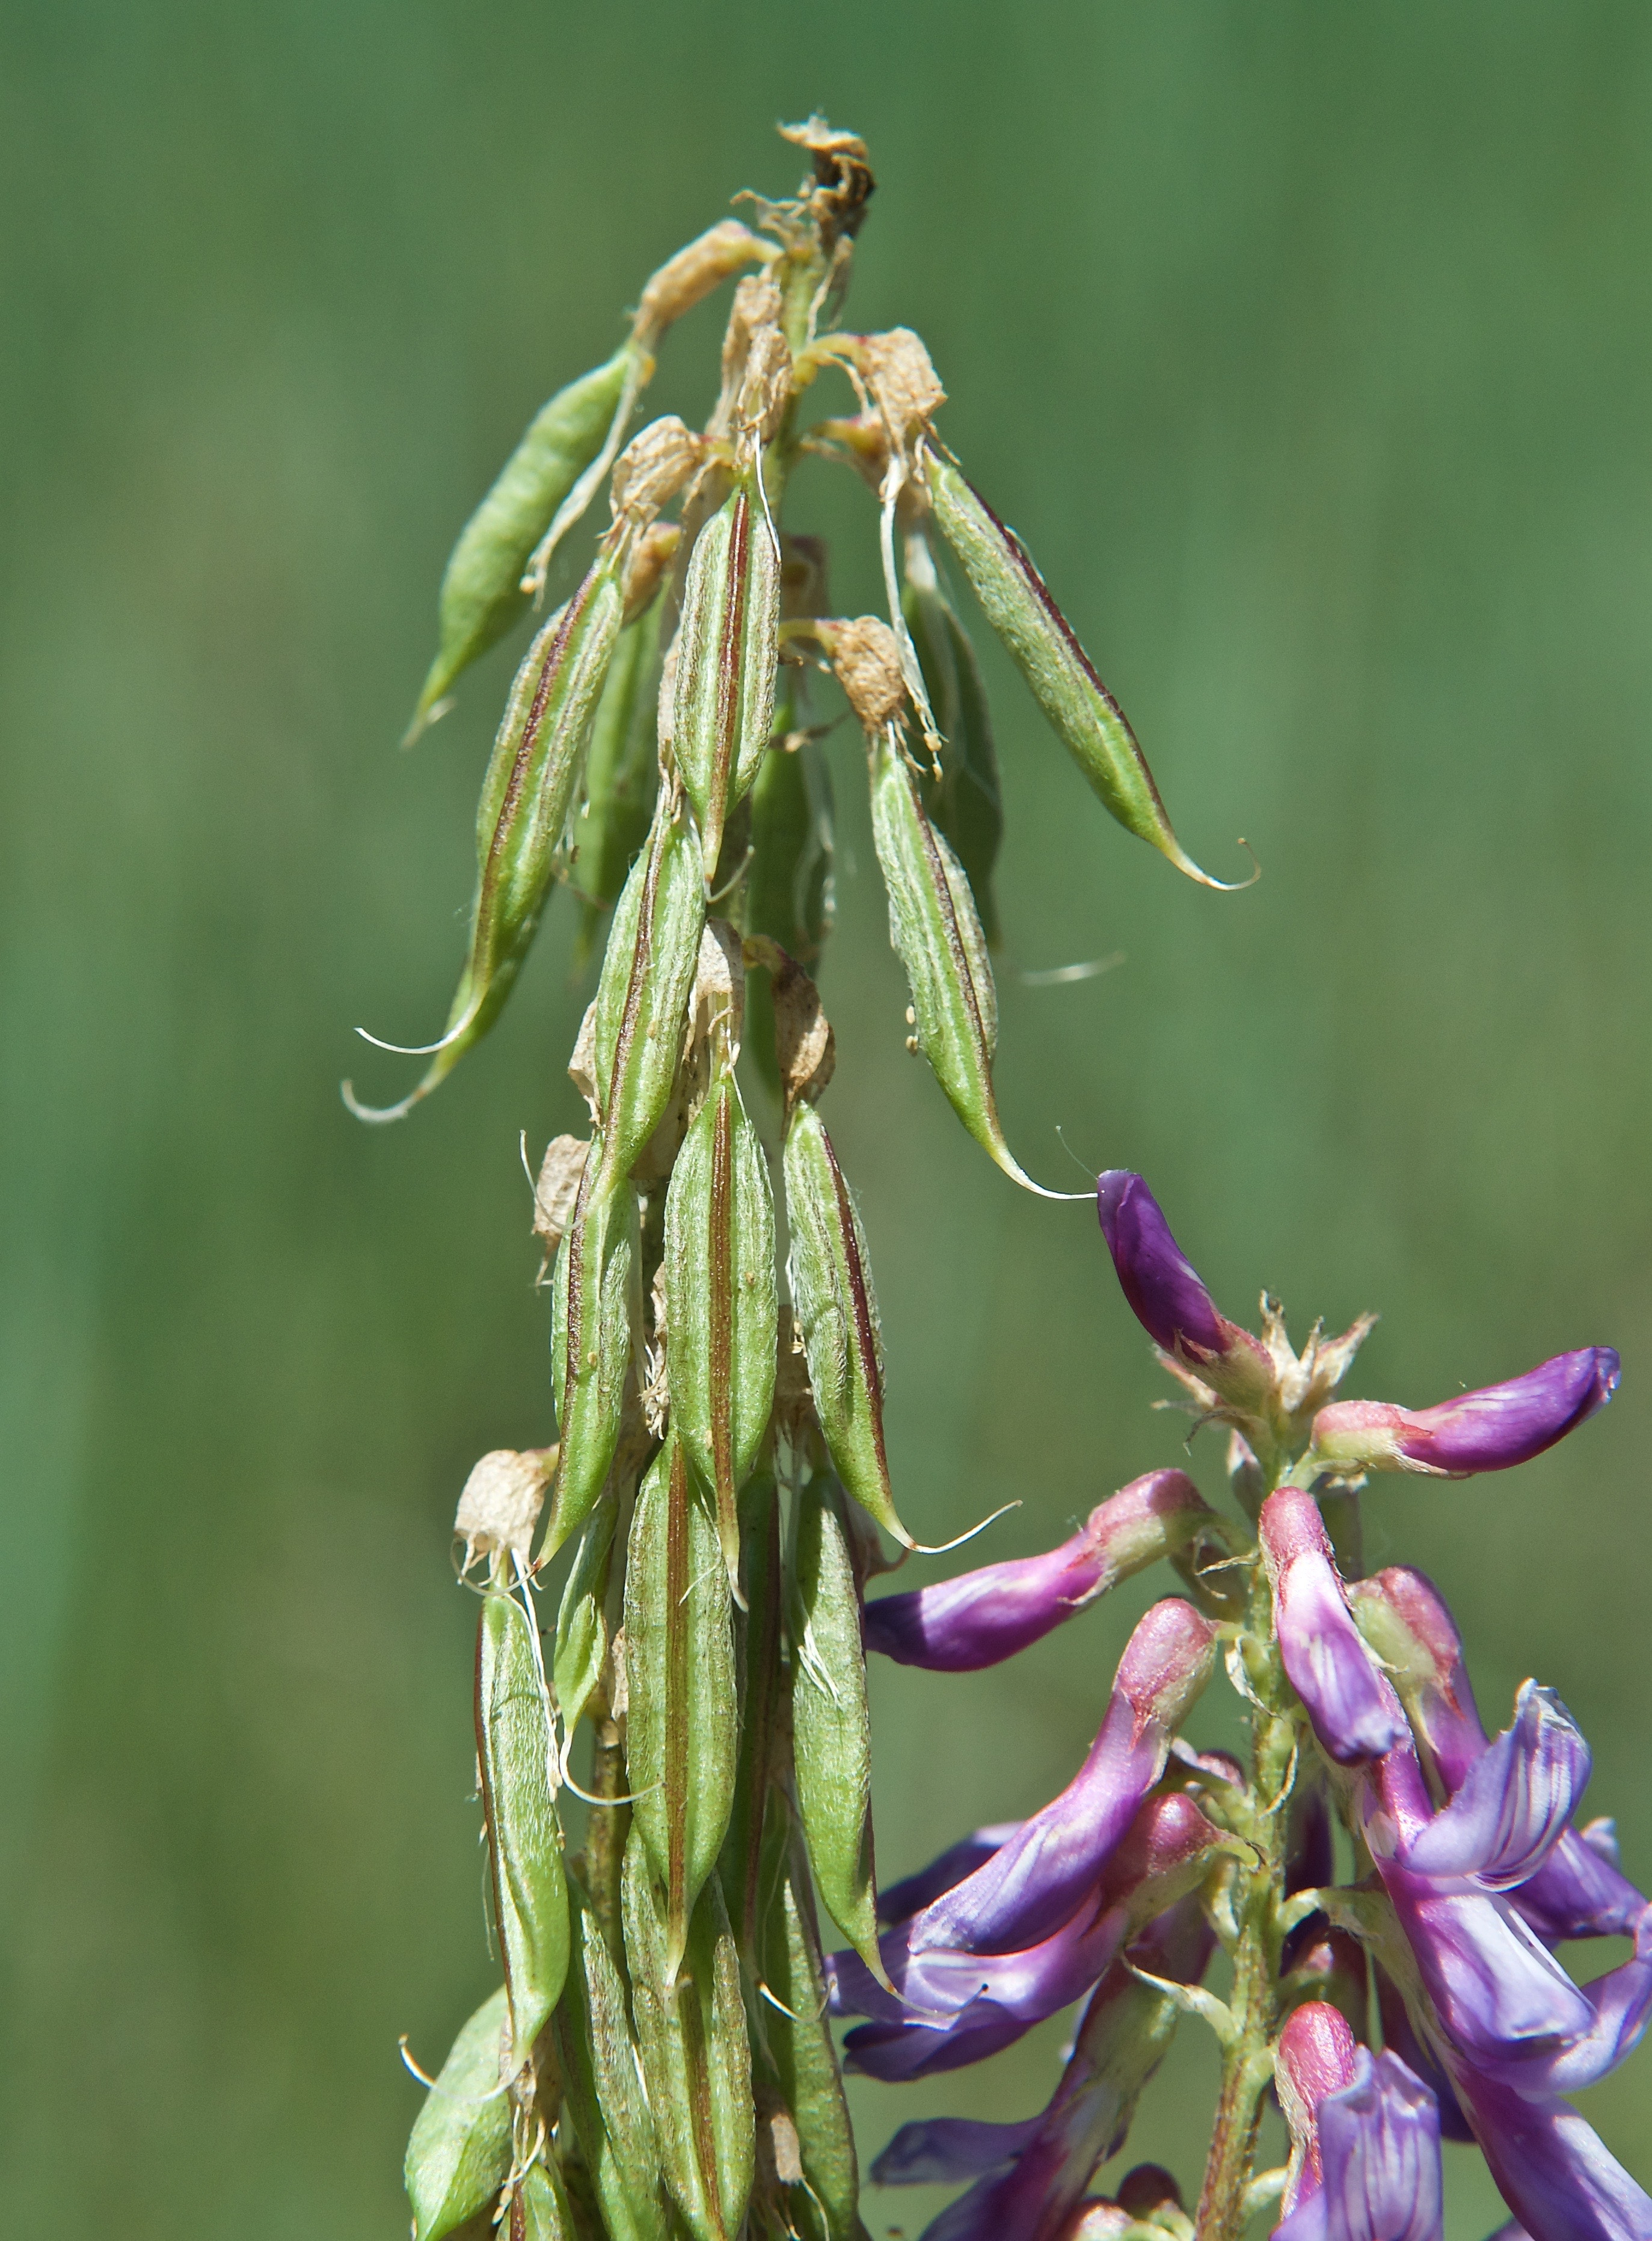 Two-Grooved Milkvetch Seedpods